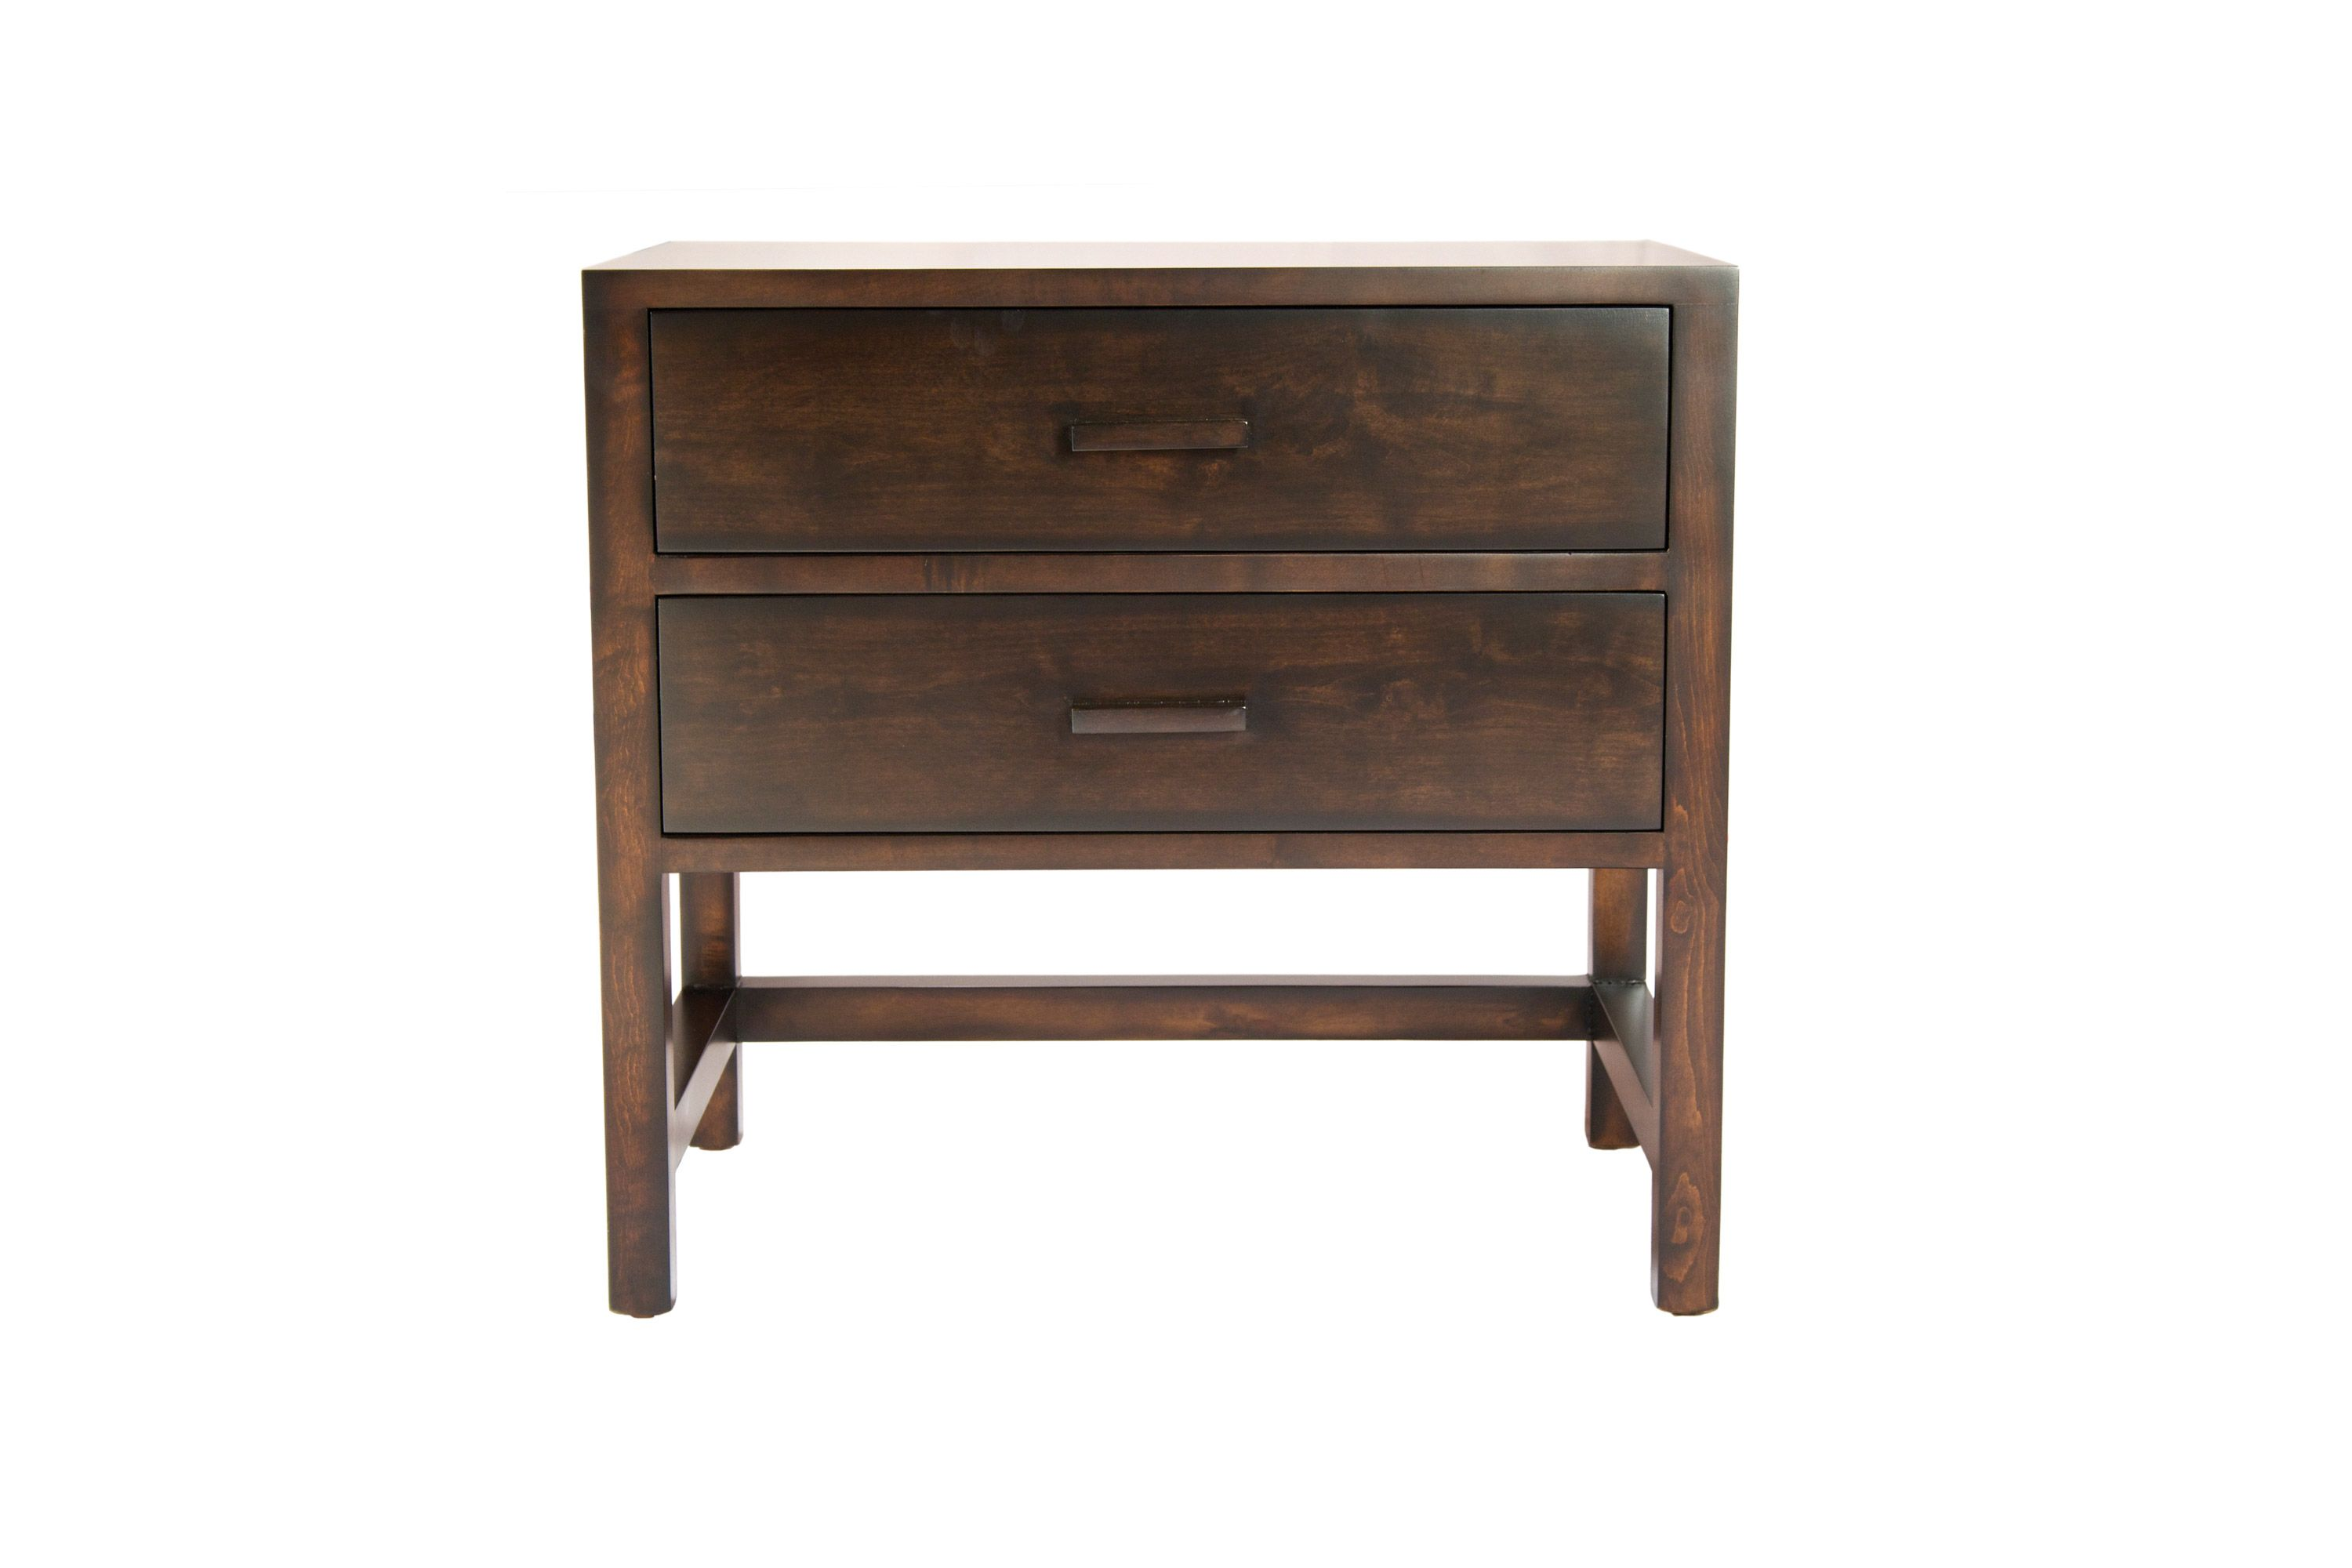 Tansu Night Stand Nightstand Decor Furniture